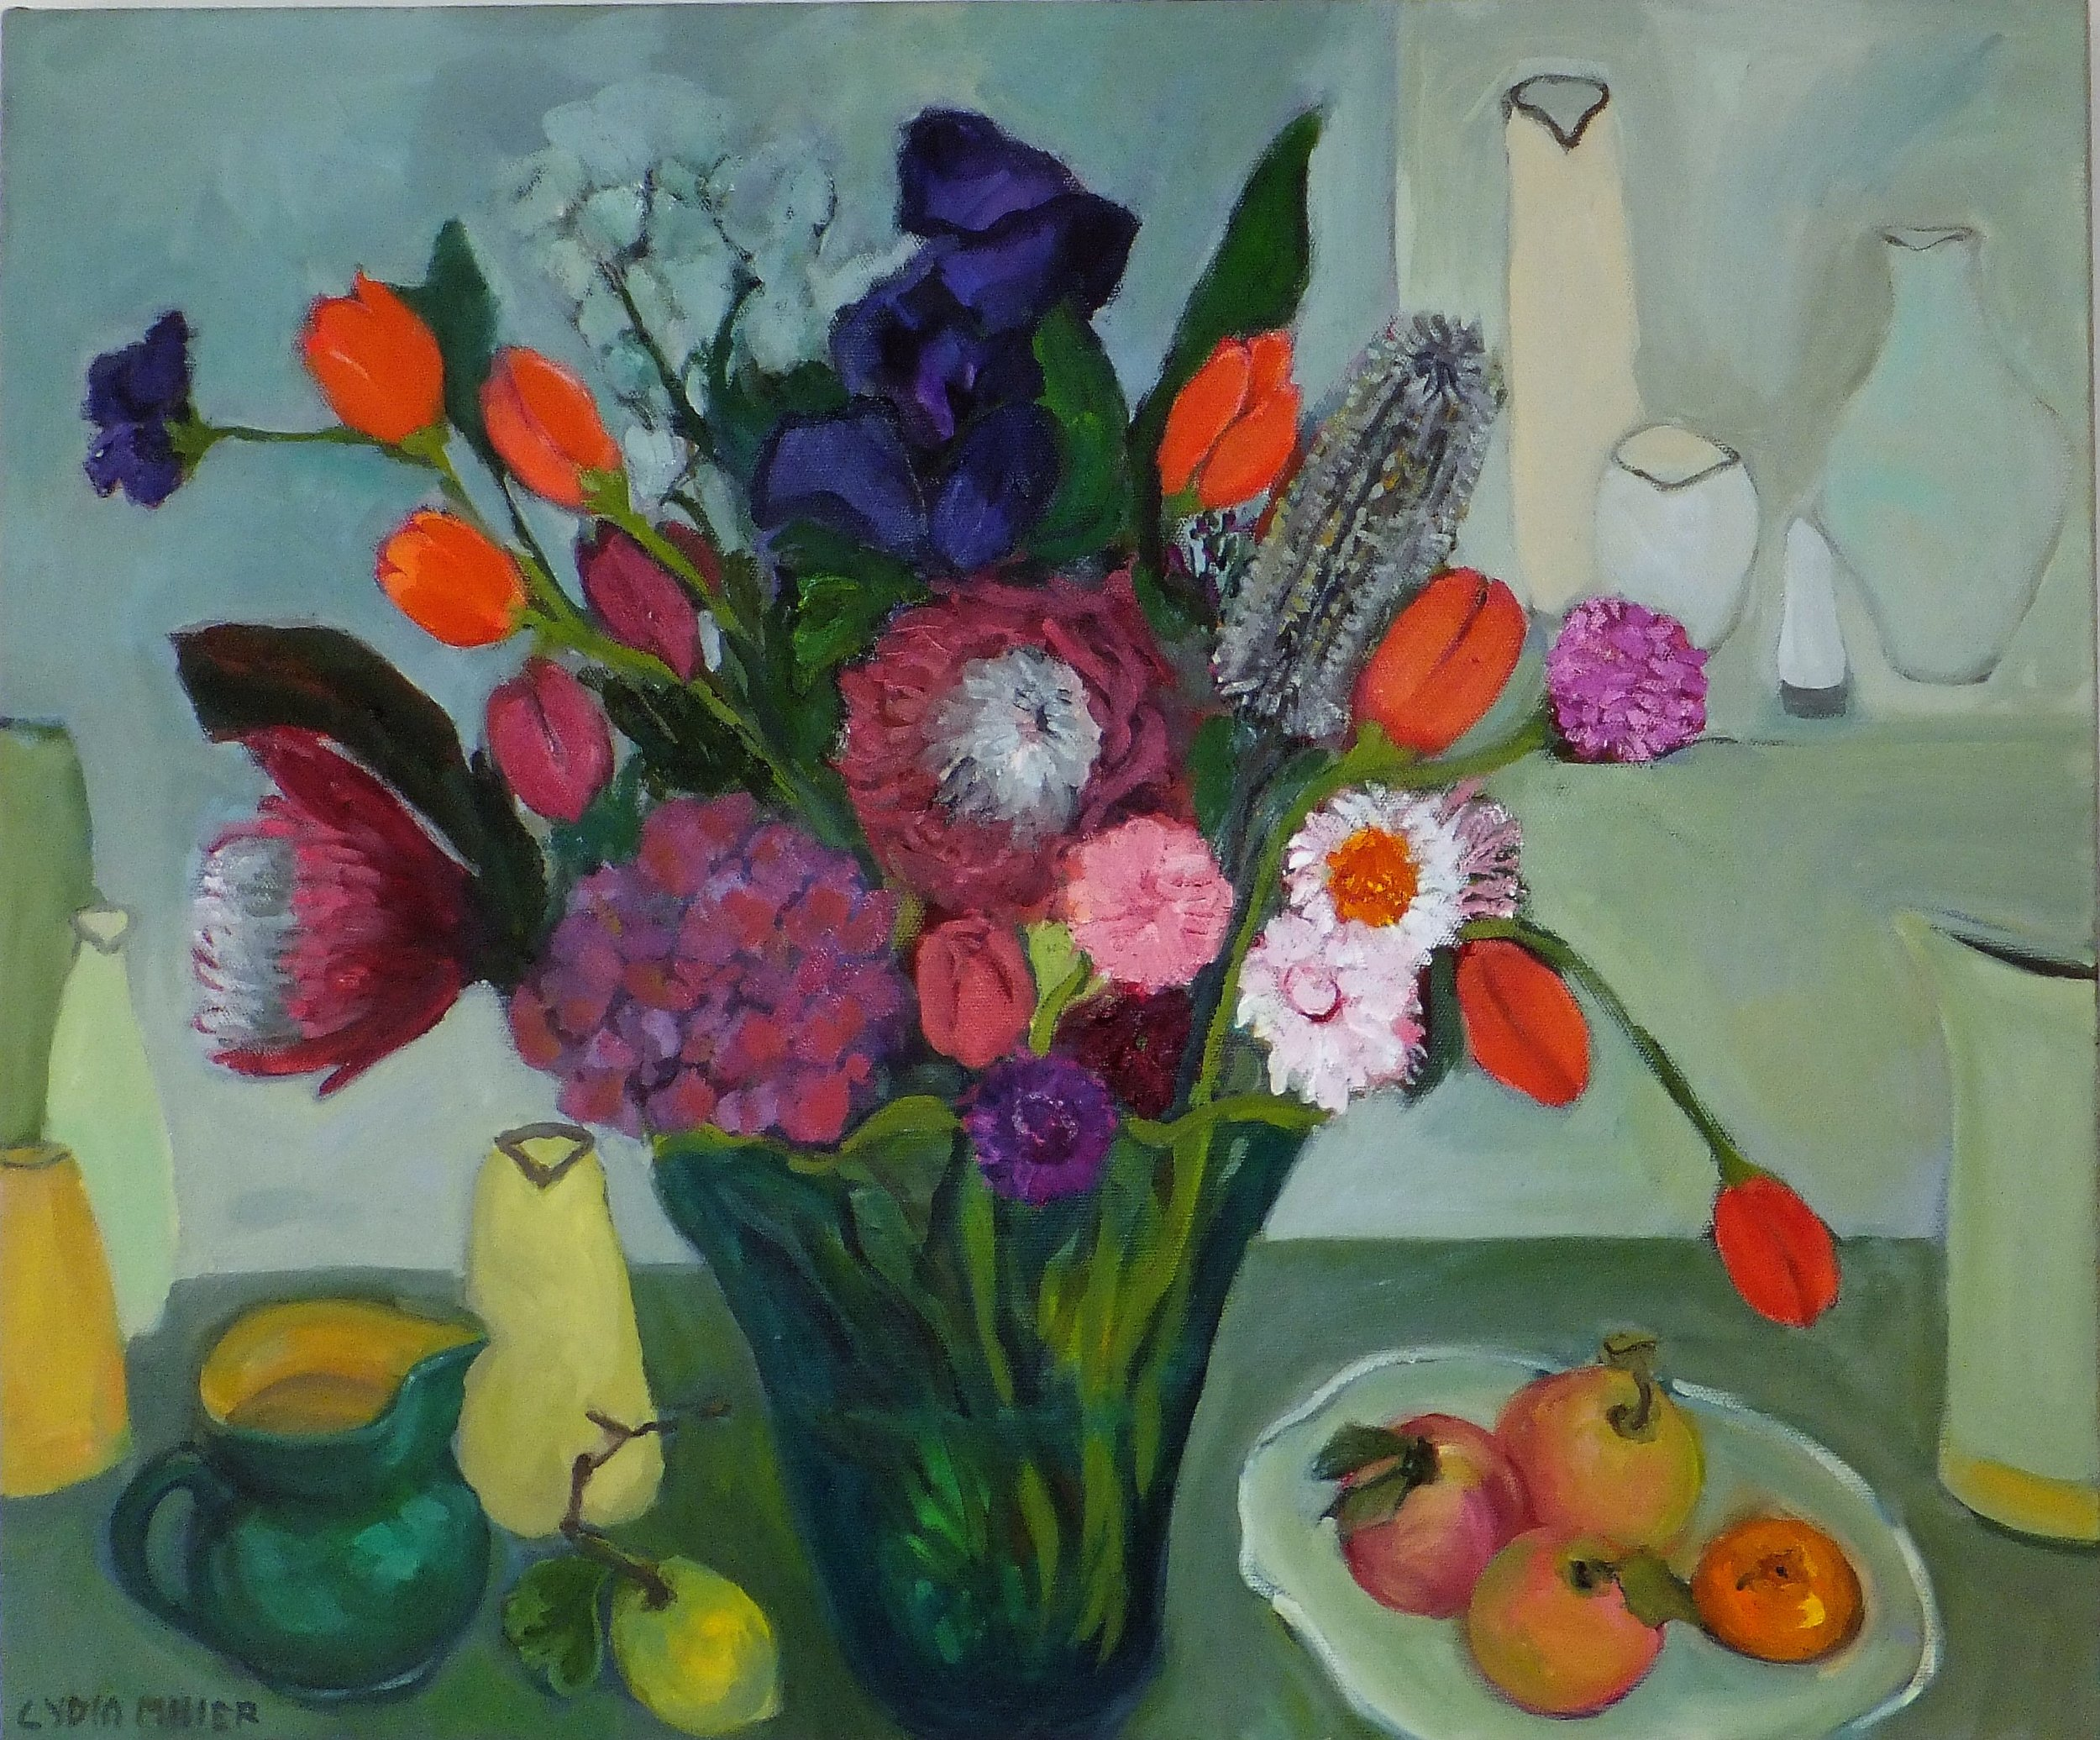 Lydia Miller, Still-Life with flowers, 2018 oil on canvas, 61 x 76cm $850.00 SOLD